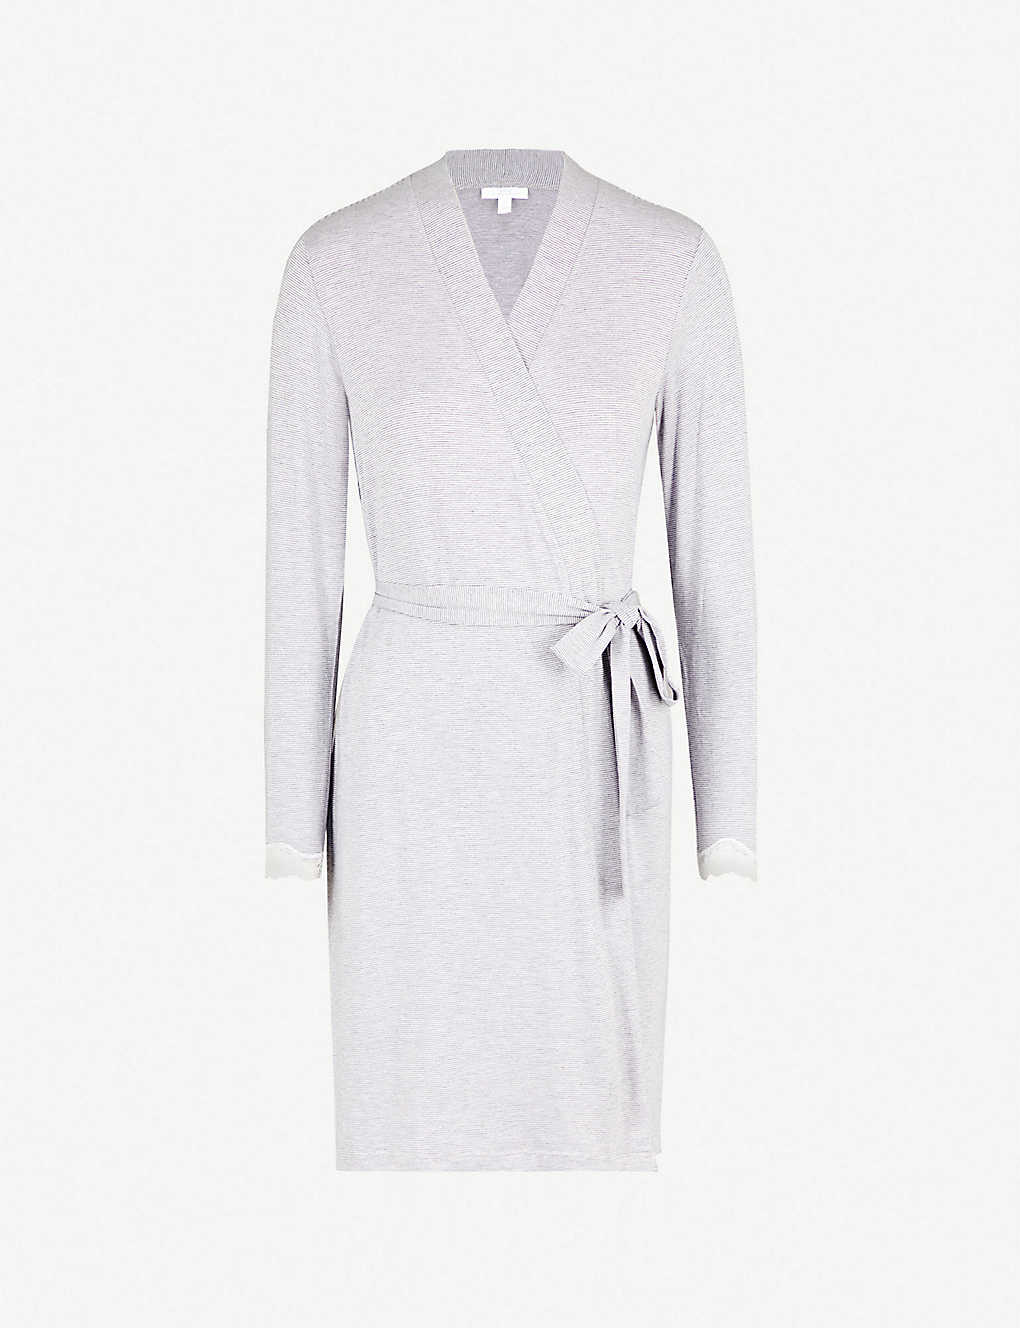 ae2fffaaff THE WHITE COMPANY - Lace trim jersey dressing gown